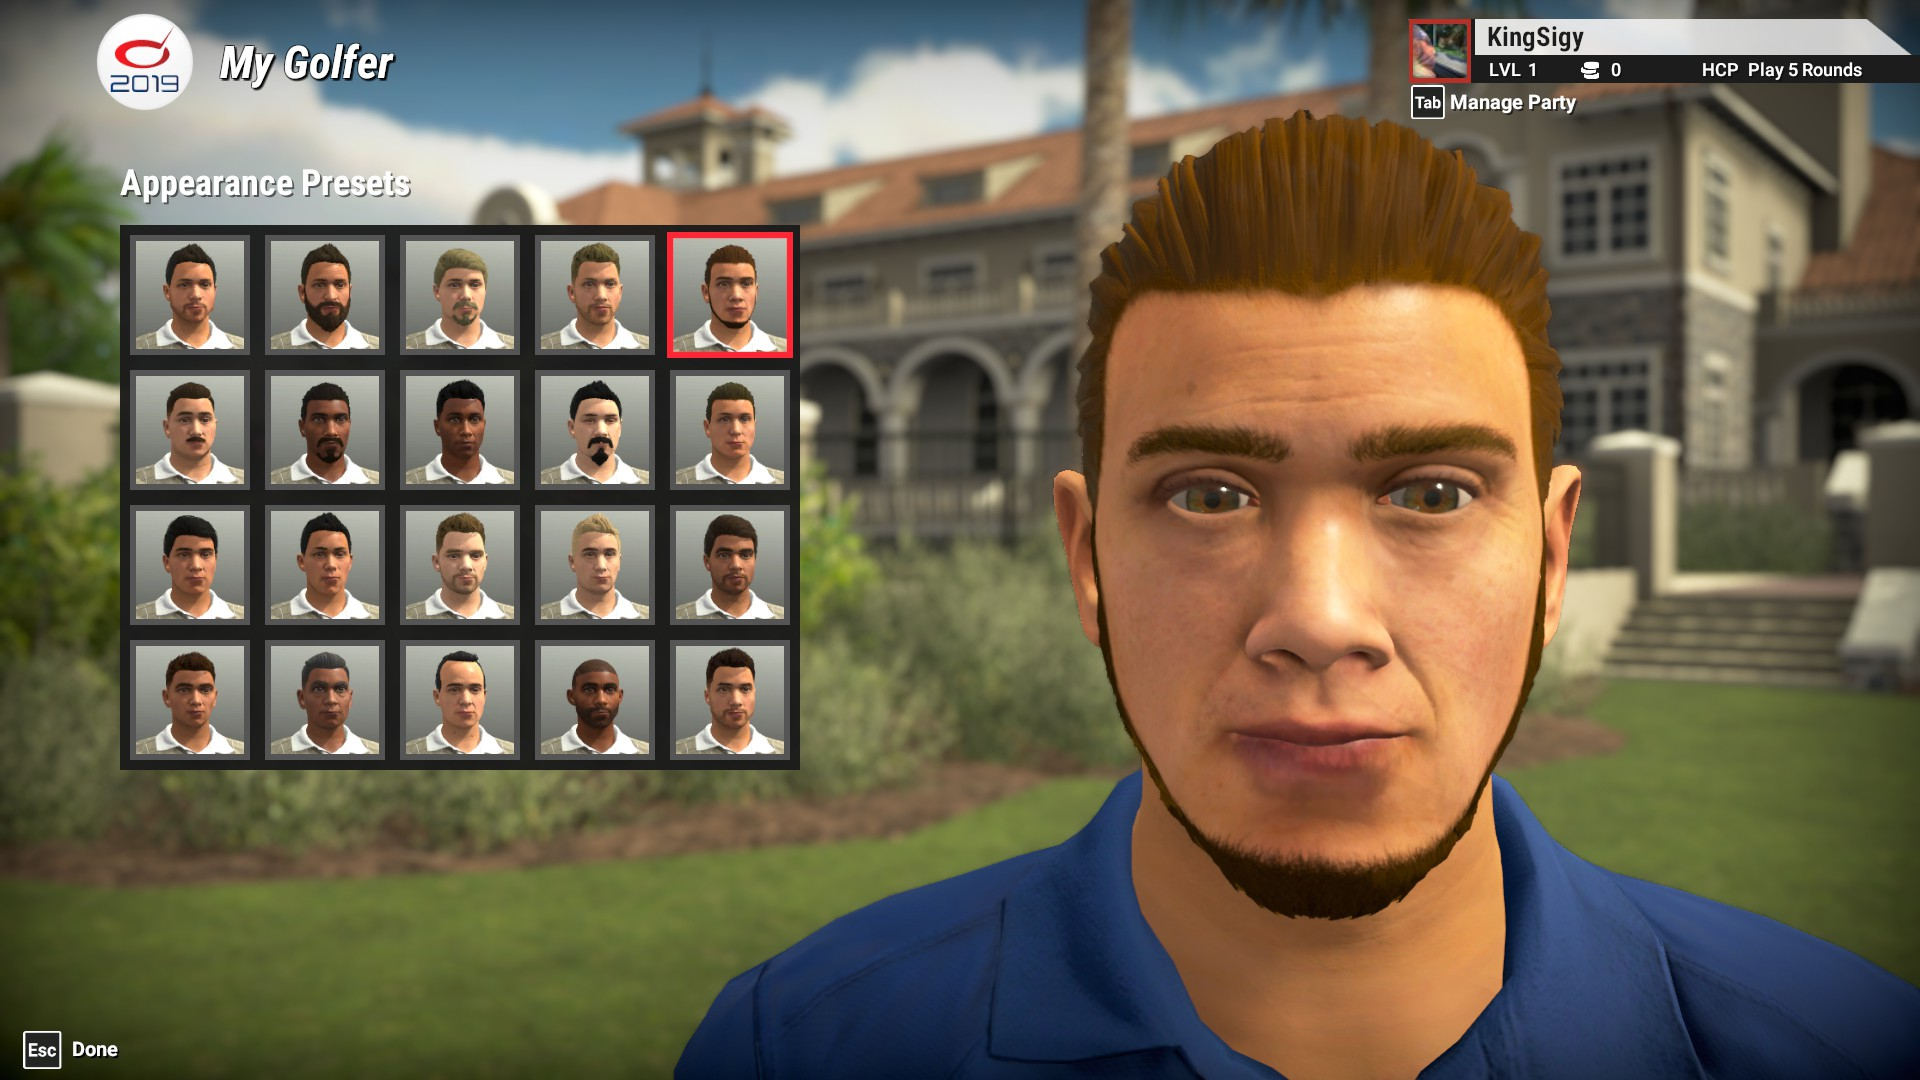 The Golf Club 2019 Character Creator